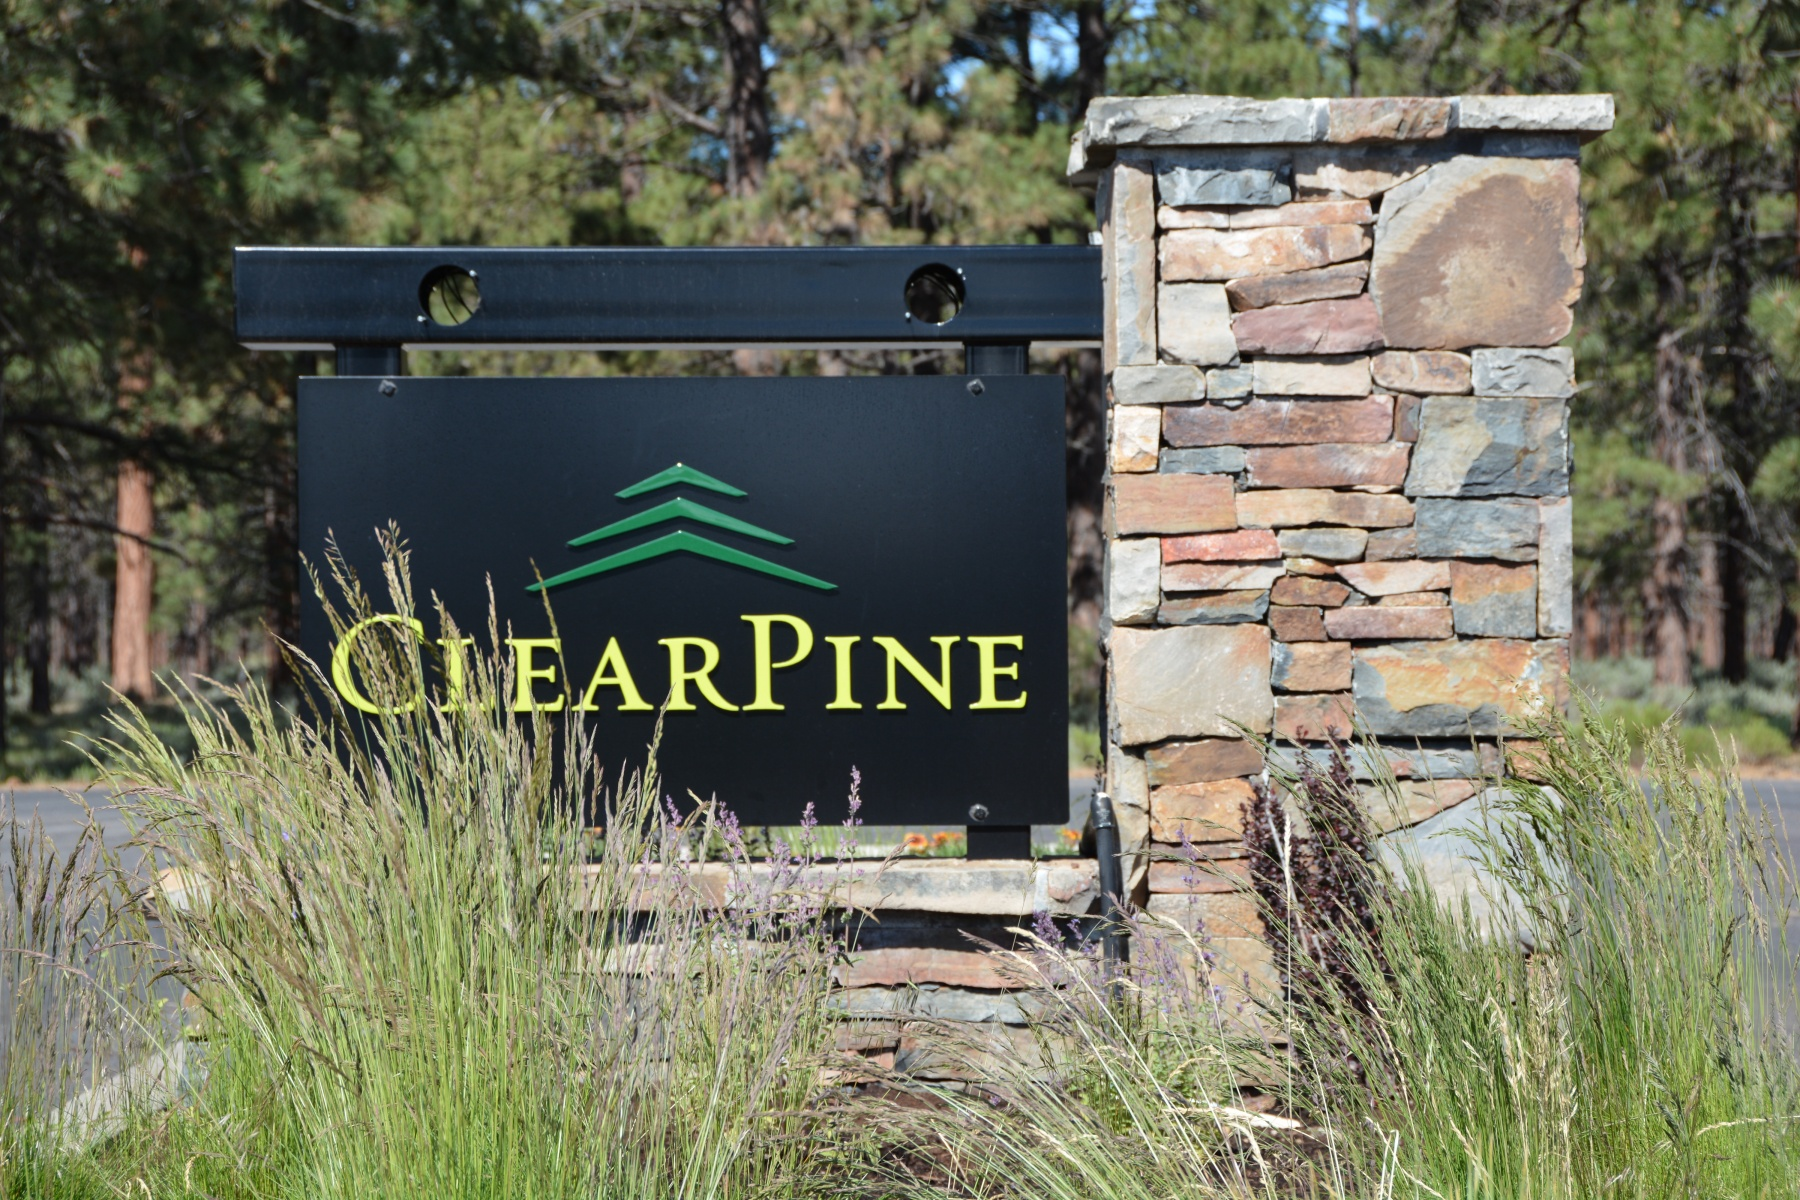 Land for Sale at Flat Build Ready Lot in ClearPine! 0 Heising Dr Lot 22 Sisters, Oregon, 97759 United States